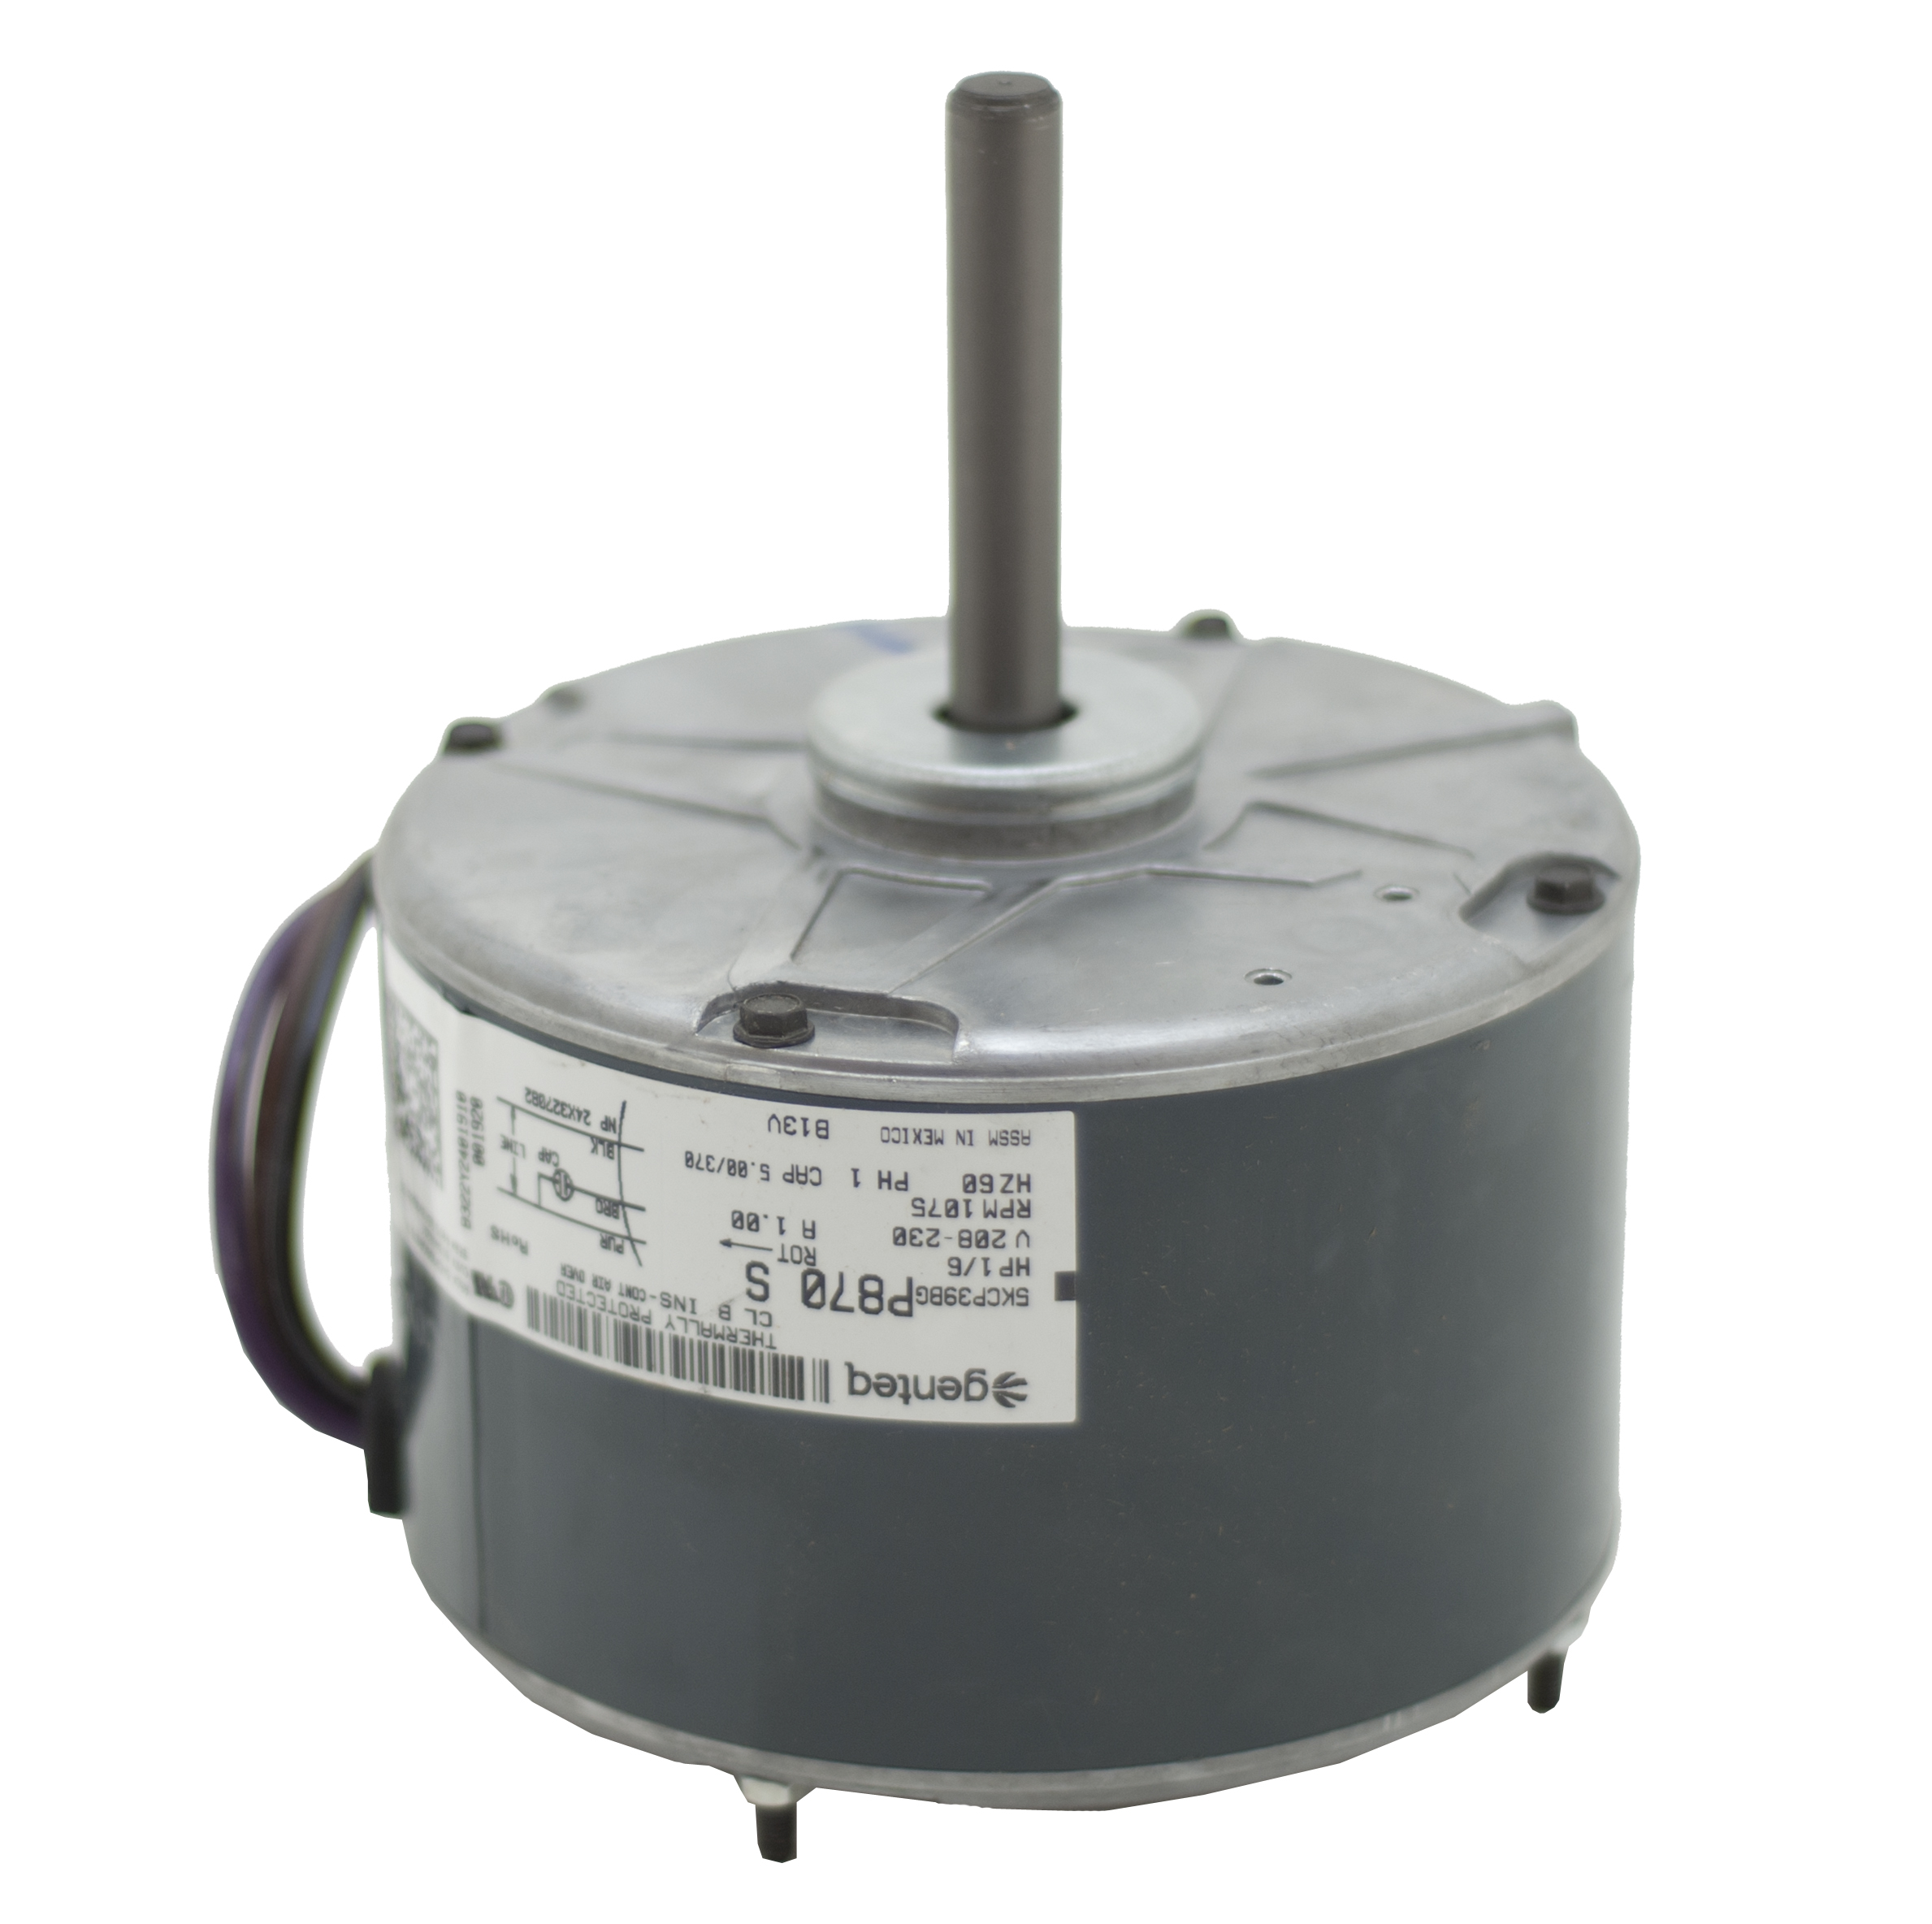 Draft Inducer Blower Motor together with 66787 Furnace Inducer Blower Motor For Trane 210330673 210340125 furthermore Wood Stove Heater Blower additionally Heat Pump How It Works as well Furnace Draft Inducer Blower Motor. on furnace inducer blower motor